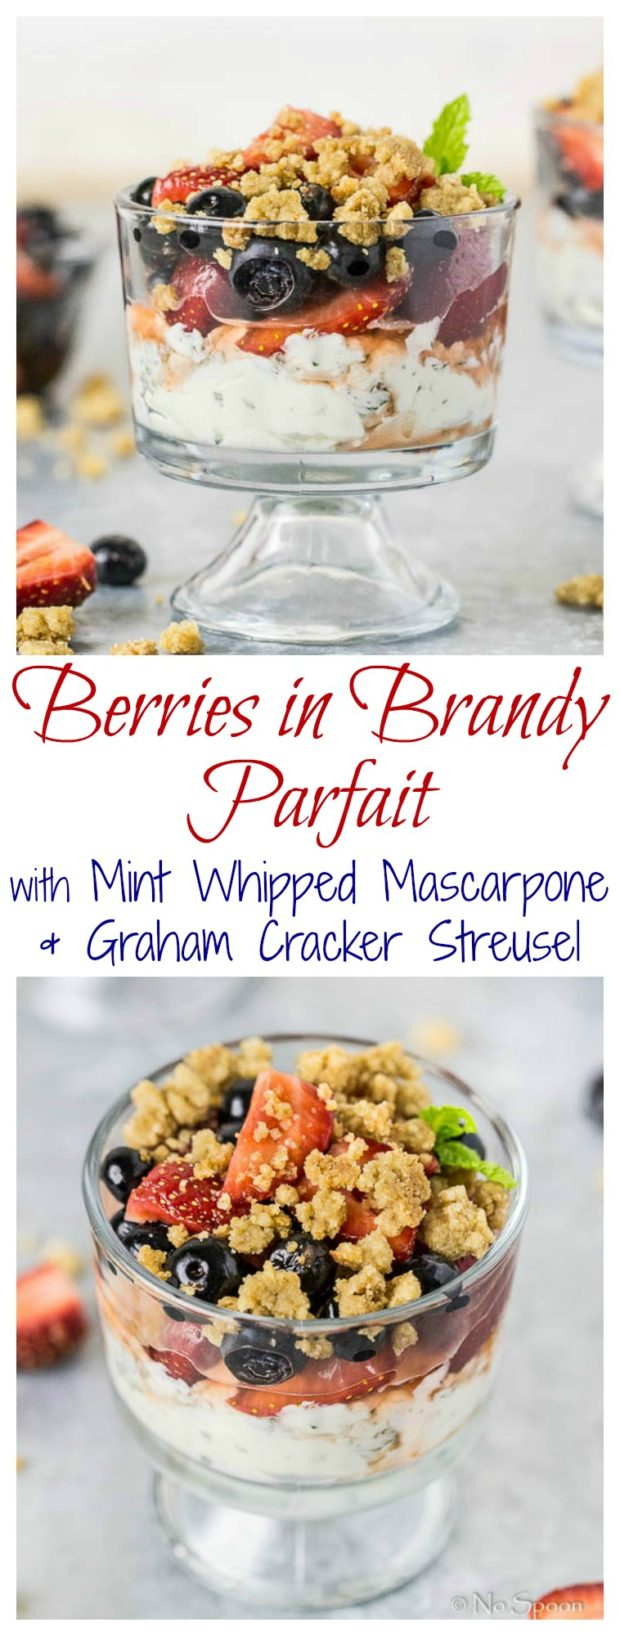 Berries in Brandy Parfait with Whipped Mascarpone & Graham Cracker Streusel- long pin1